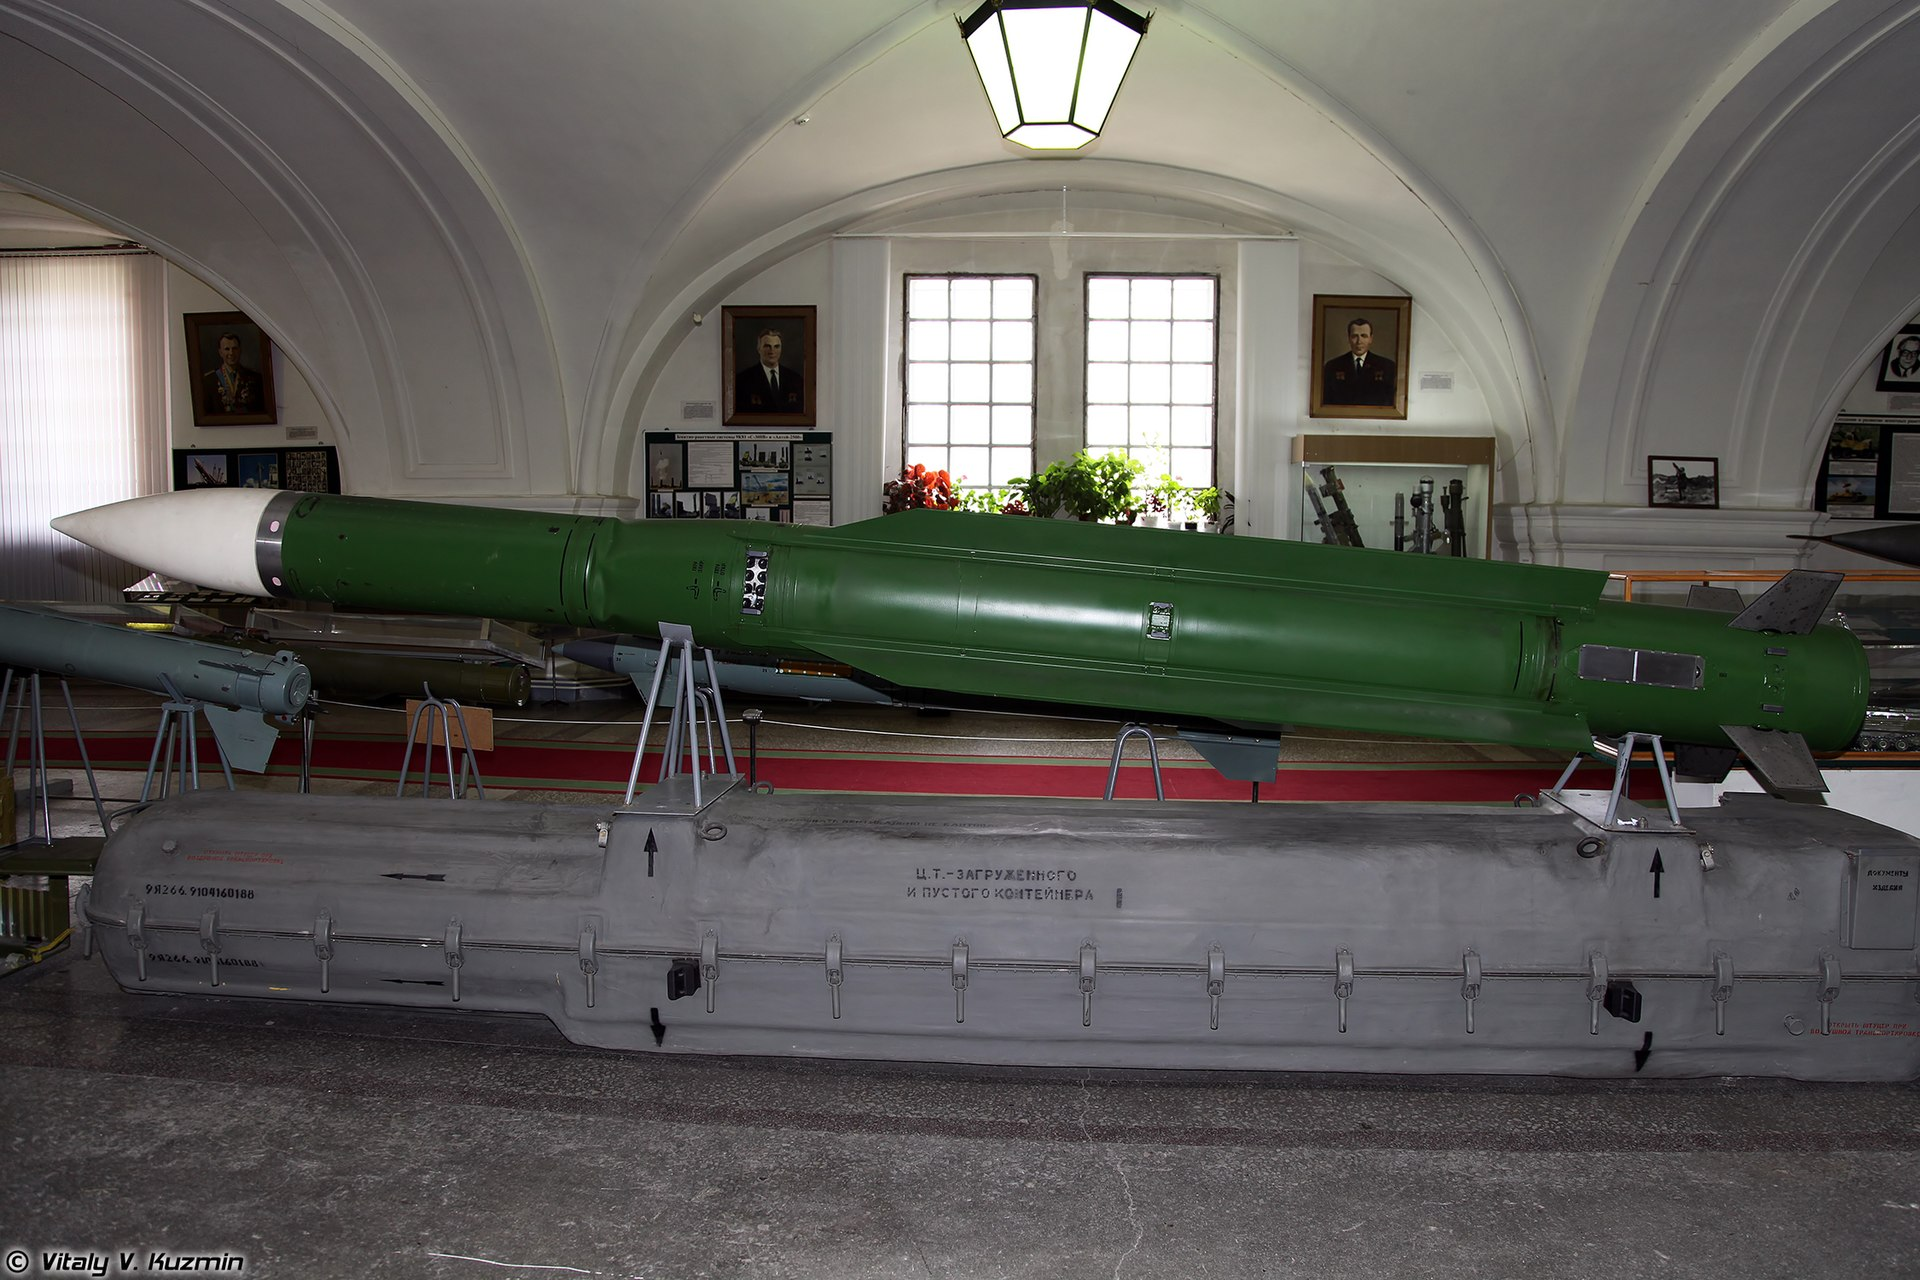 https://upload.wikimedia.org/wikipedia/commons/thumb/a/a5/9M38_surface-to-air_missile_of_Buk_system.jpg/1920px-9M38_surface-to-air_missile_of_Buk_system.jpg